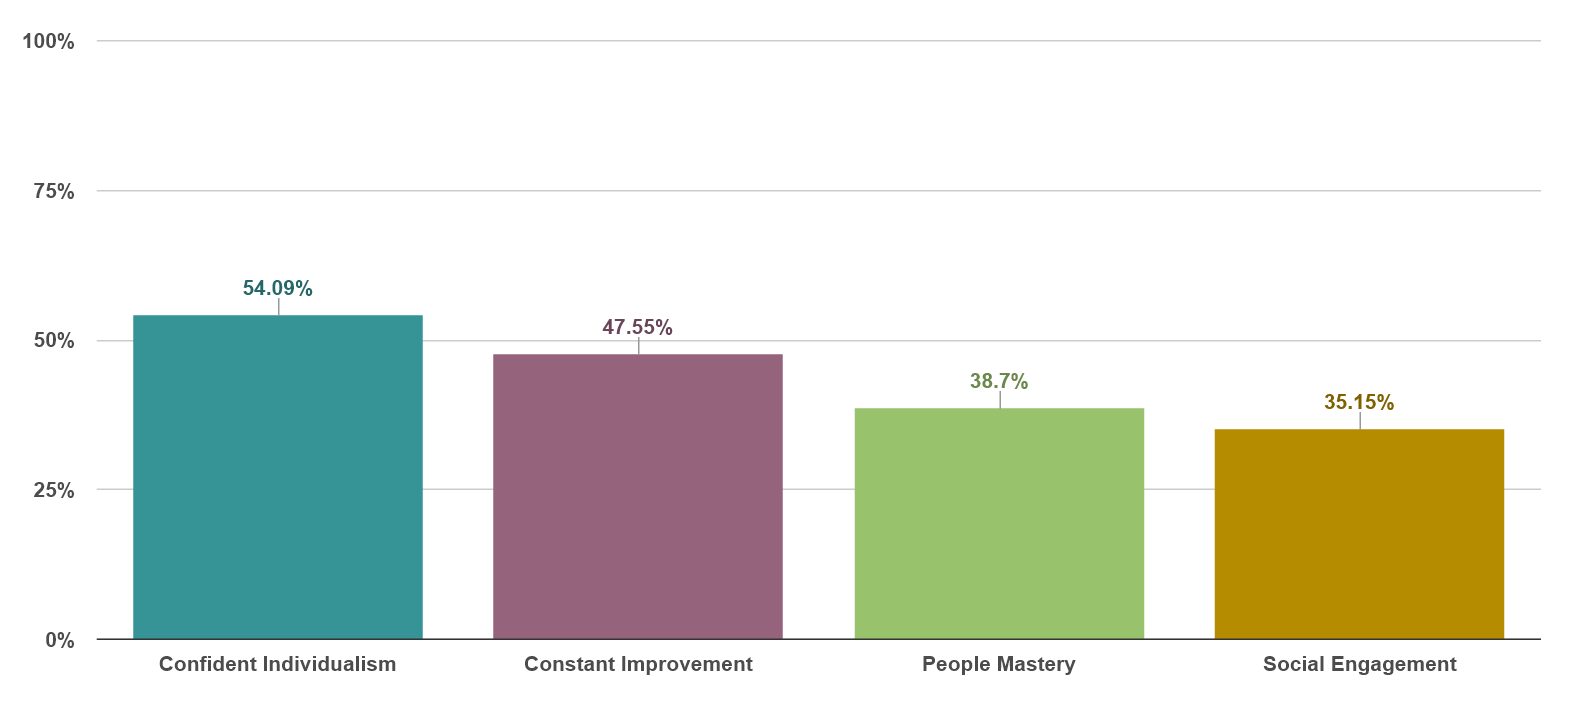 Agreement by Strategy: Confident Individualism 54%, Constant Improvement 48%, People Mastery 39%, Social Engagement 35%.